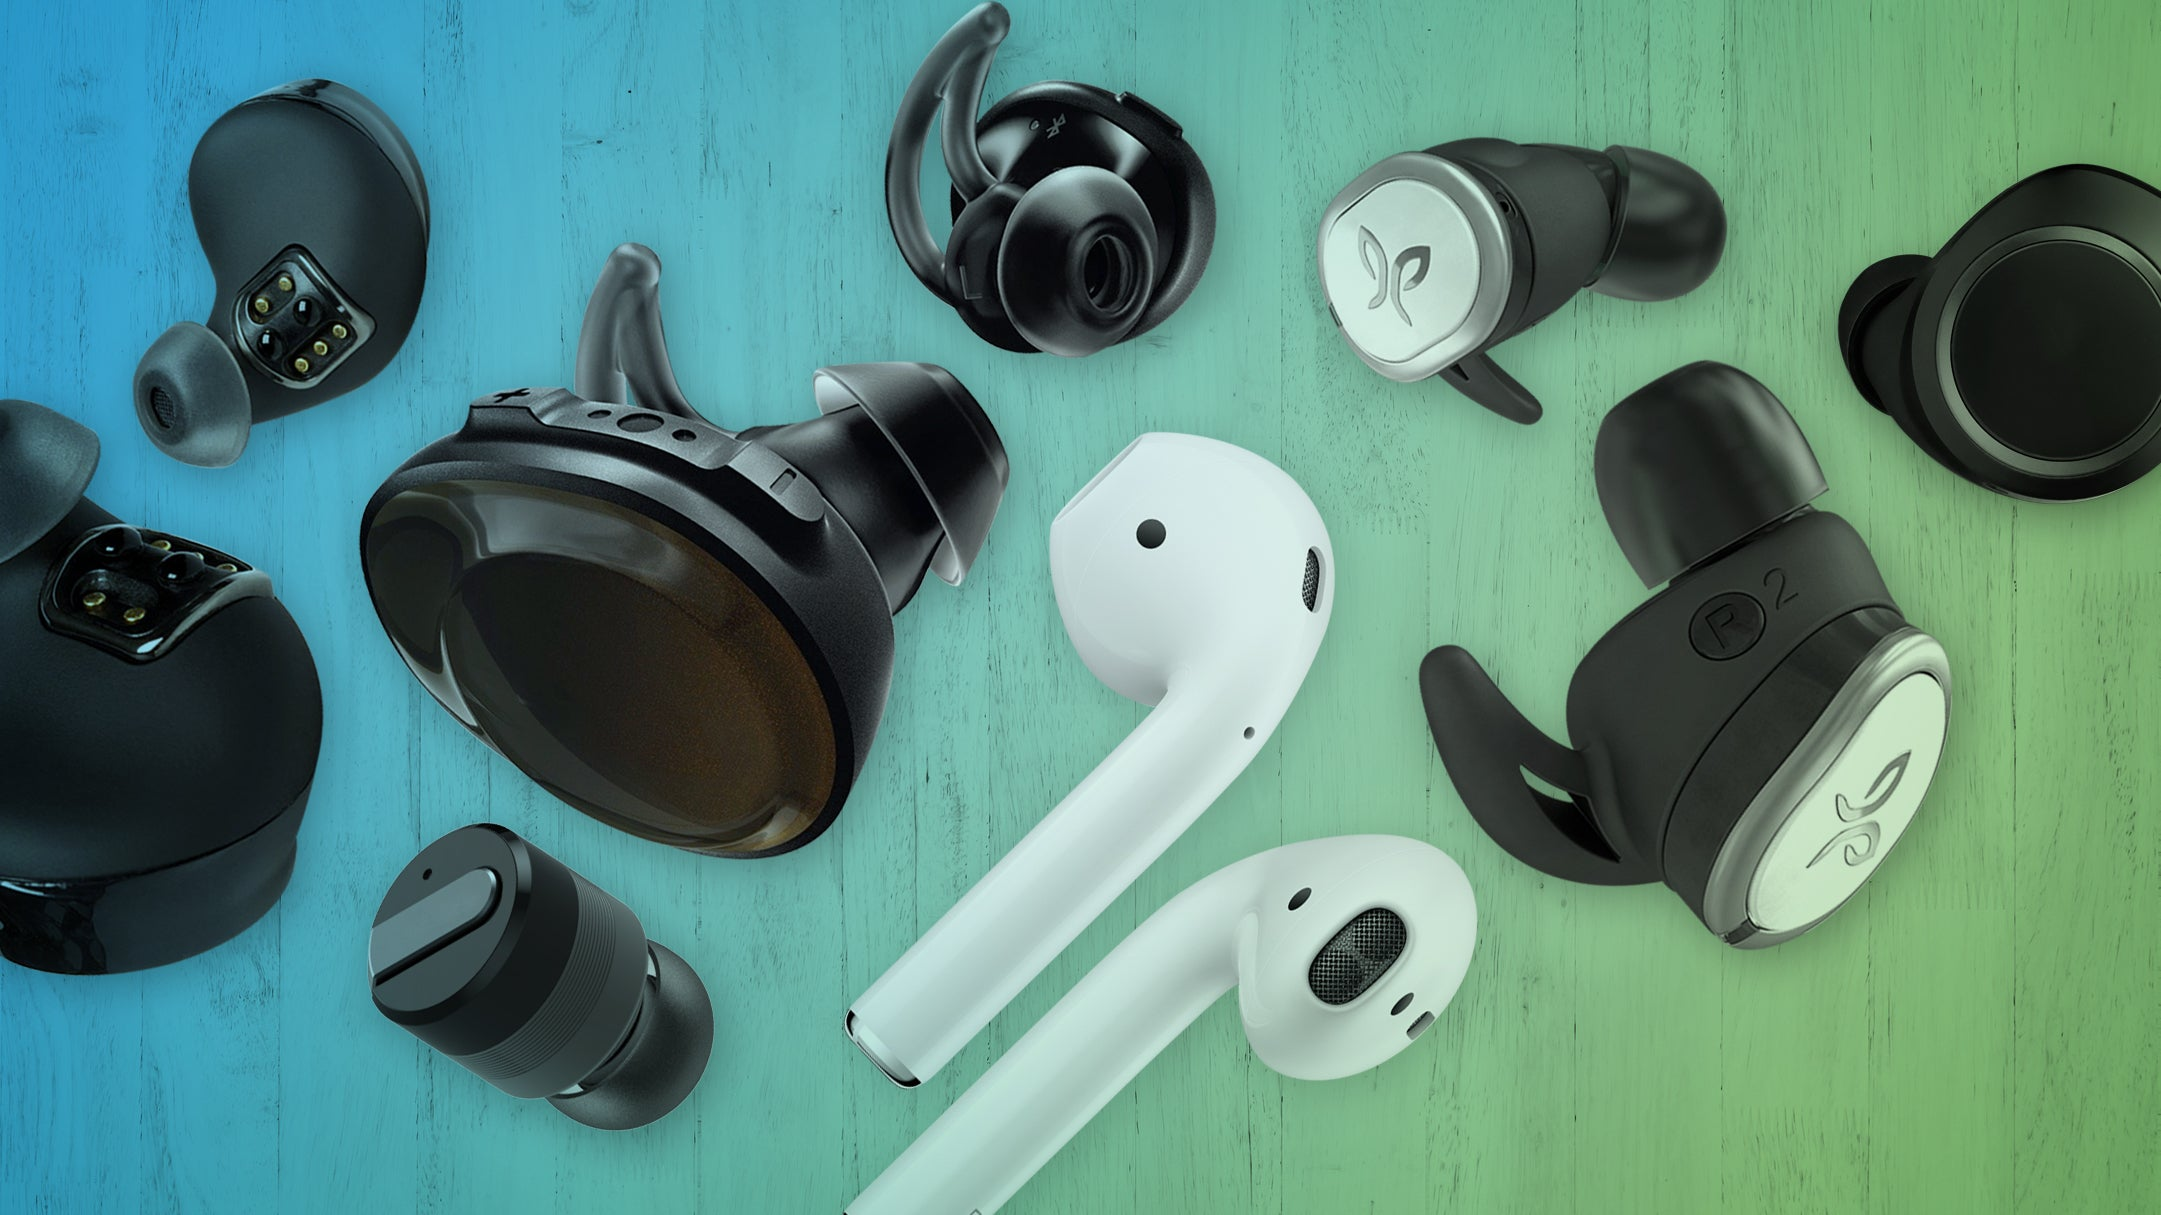 c1939c5e344 Best true wireless earbuds 2019: Top picks, expert reviews | Macworld